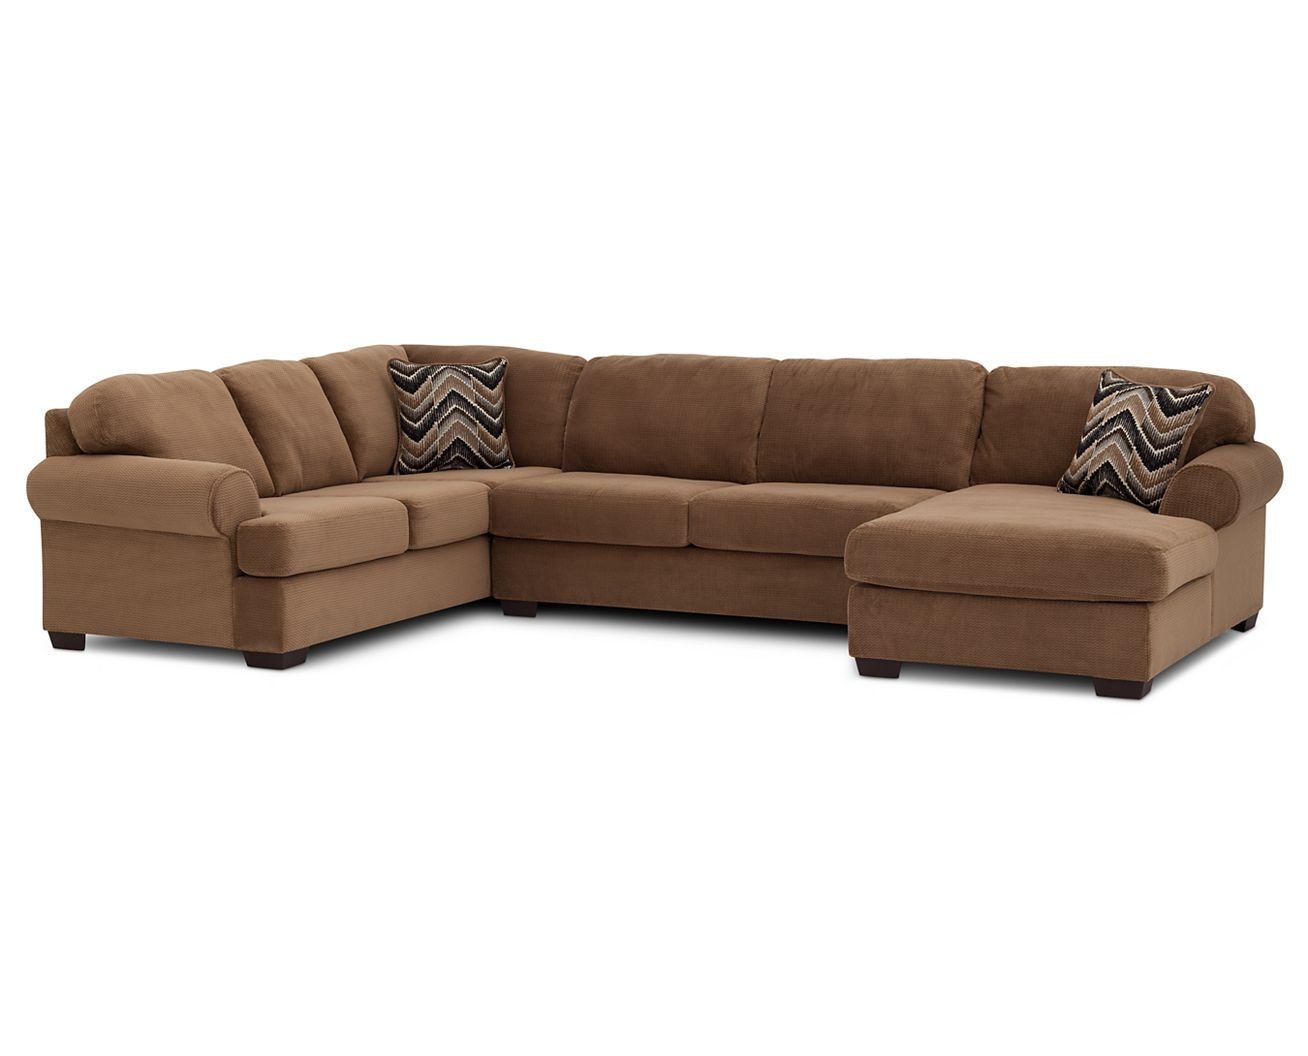 stylish sofas wide selection of quality sofas furniture row